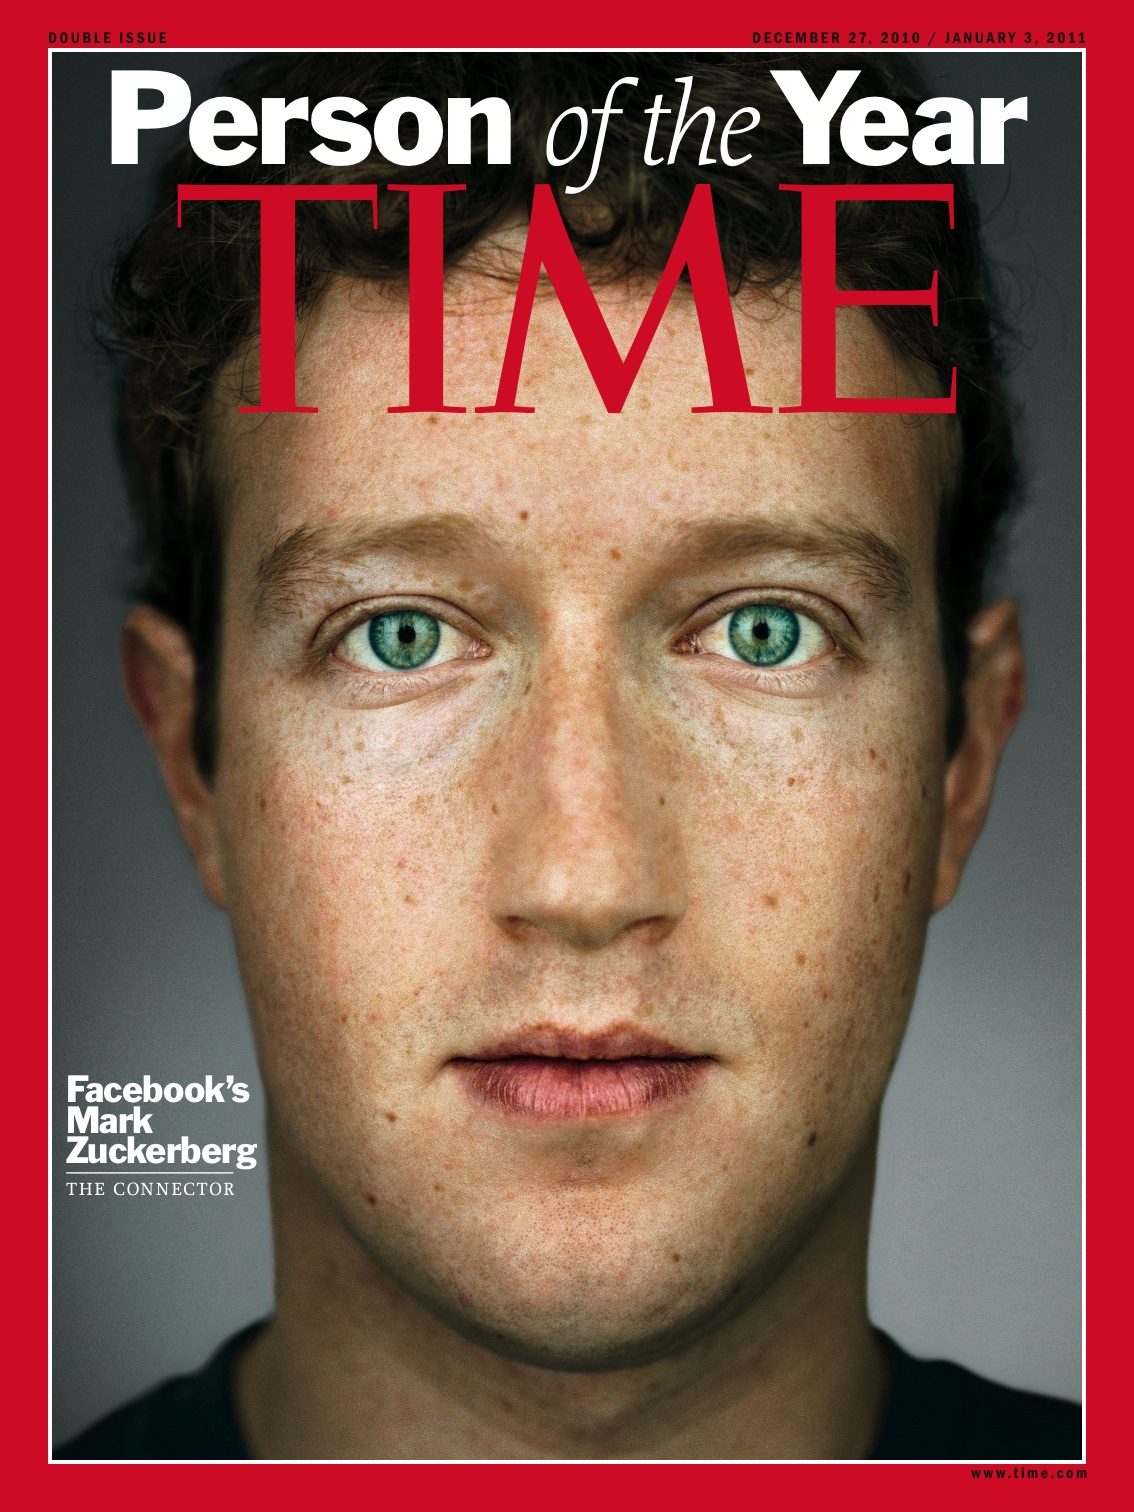 mark-zuckerberg-2010-time-person-of-the-year